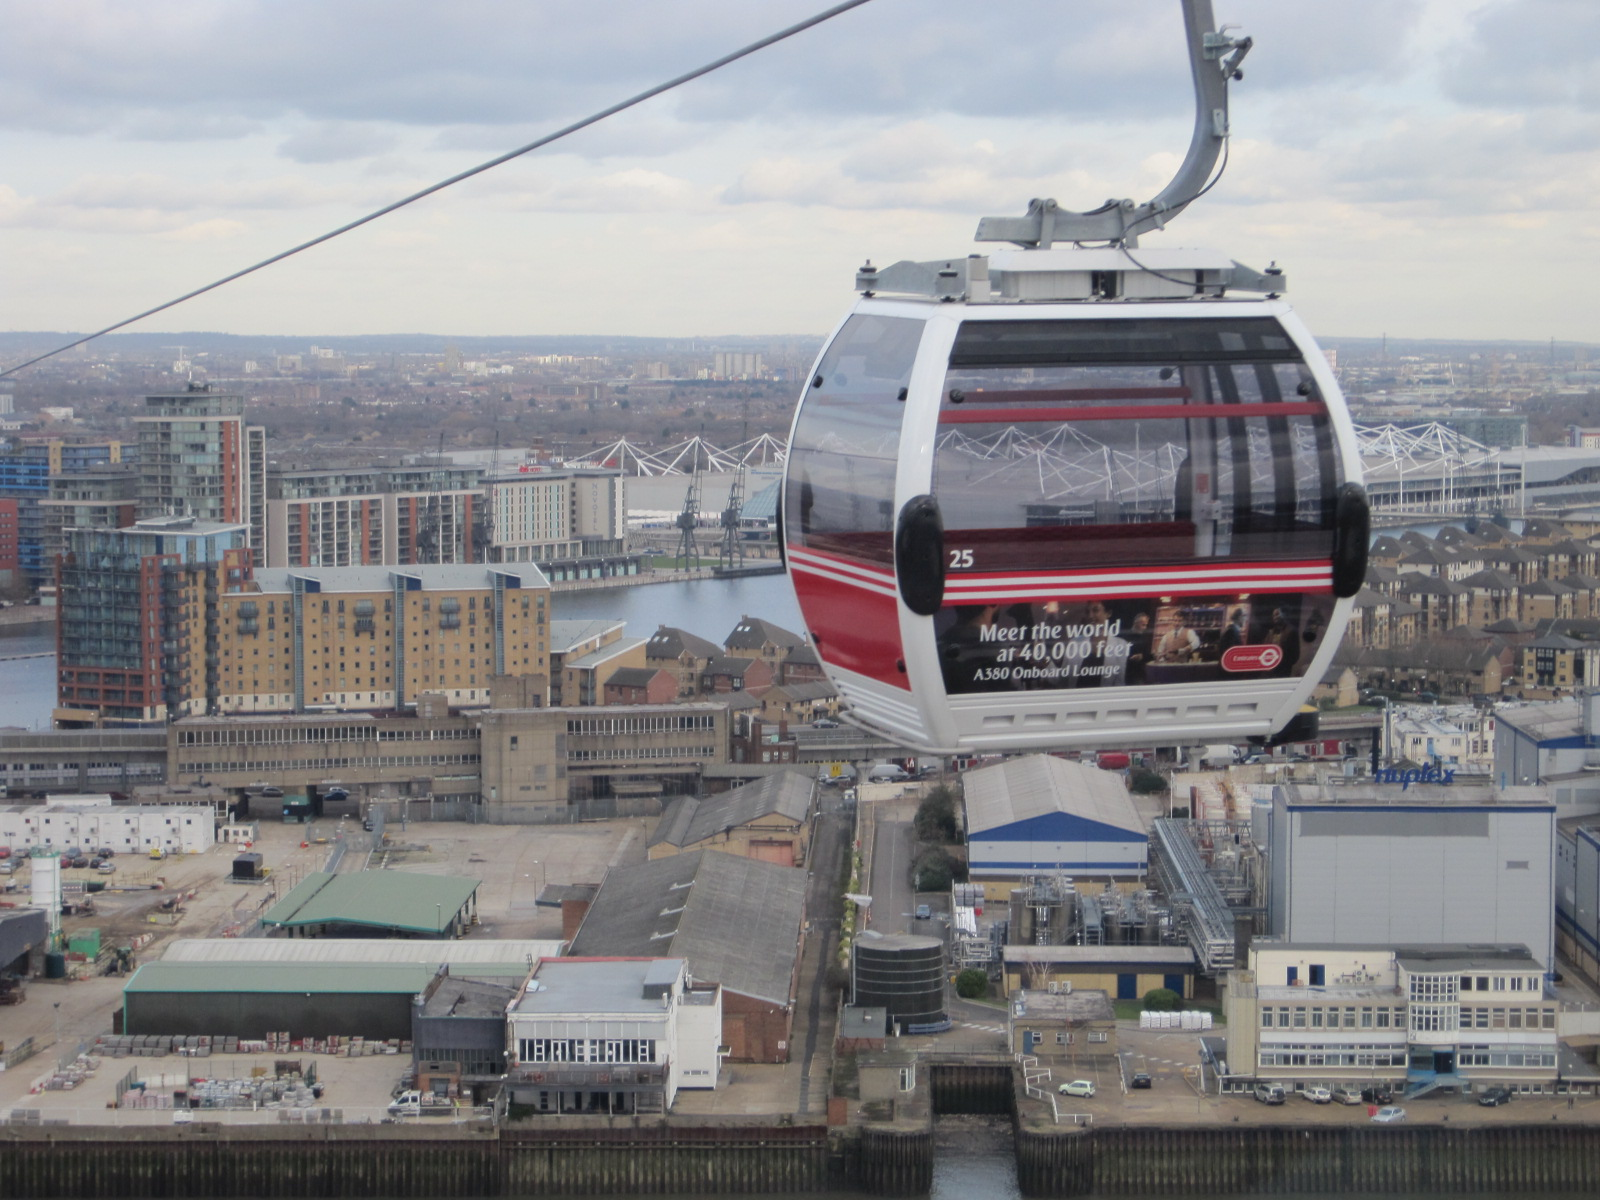 The Emirates Air Line - photo by Juliamaud